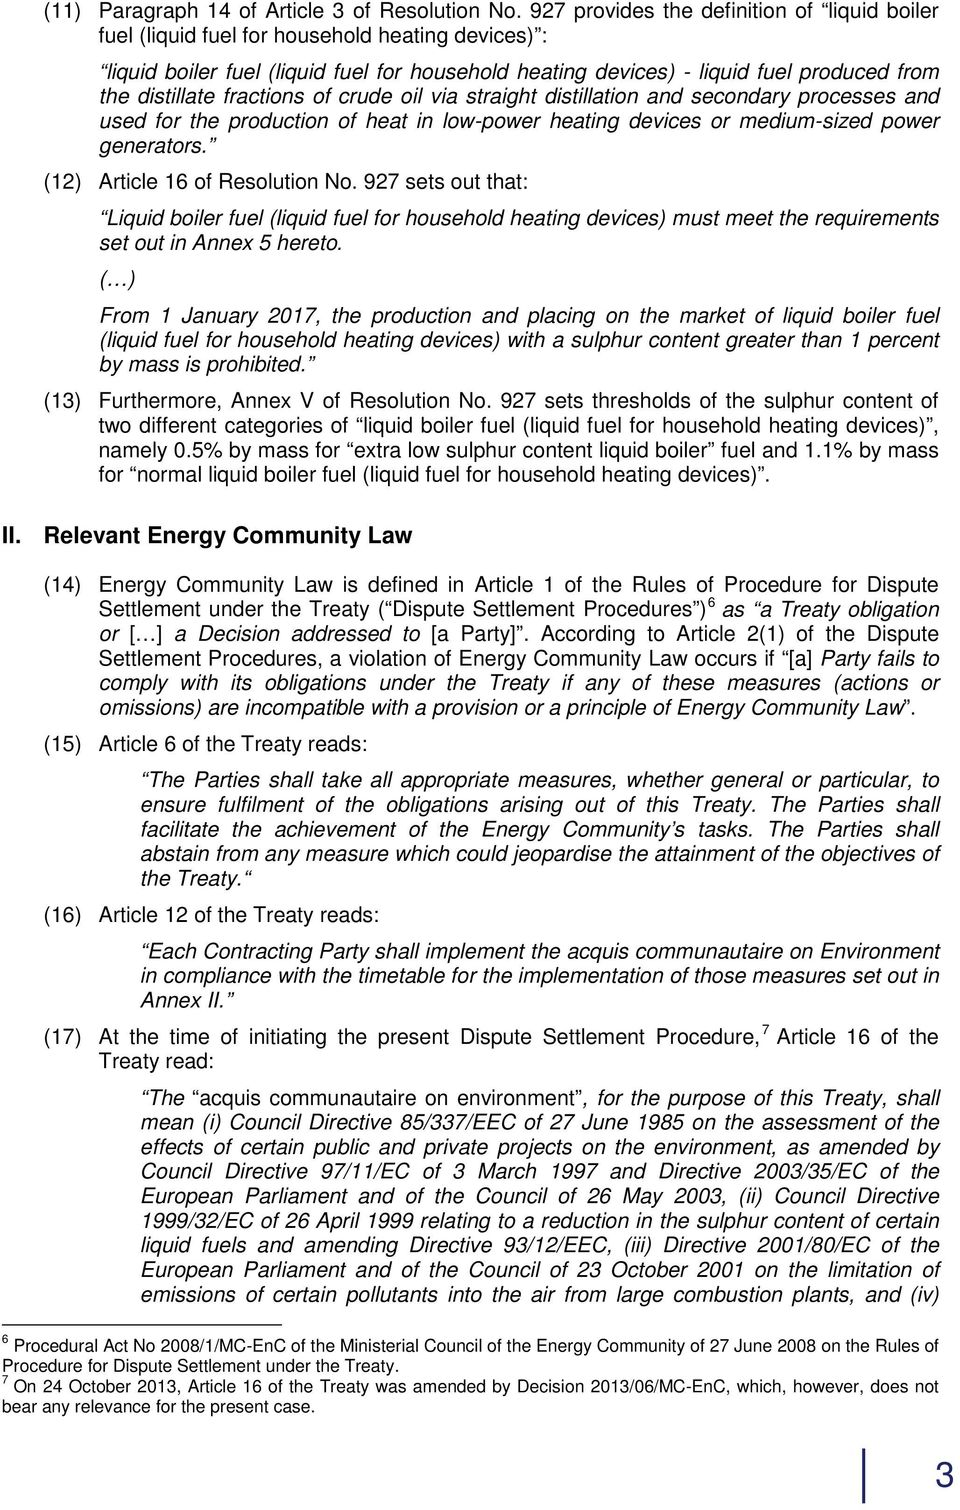 distillate fractions of crude oil via straight distillation and secondary processes and used for the production of heat in low-power heating devices or medium-sized power generators.